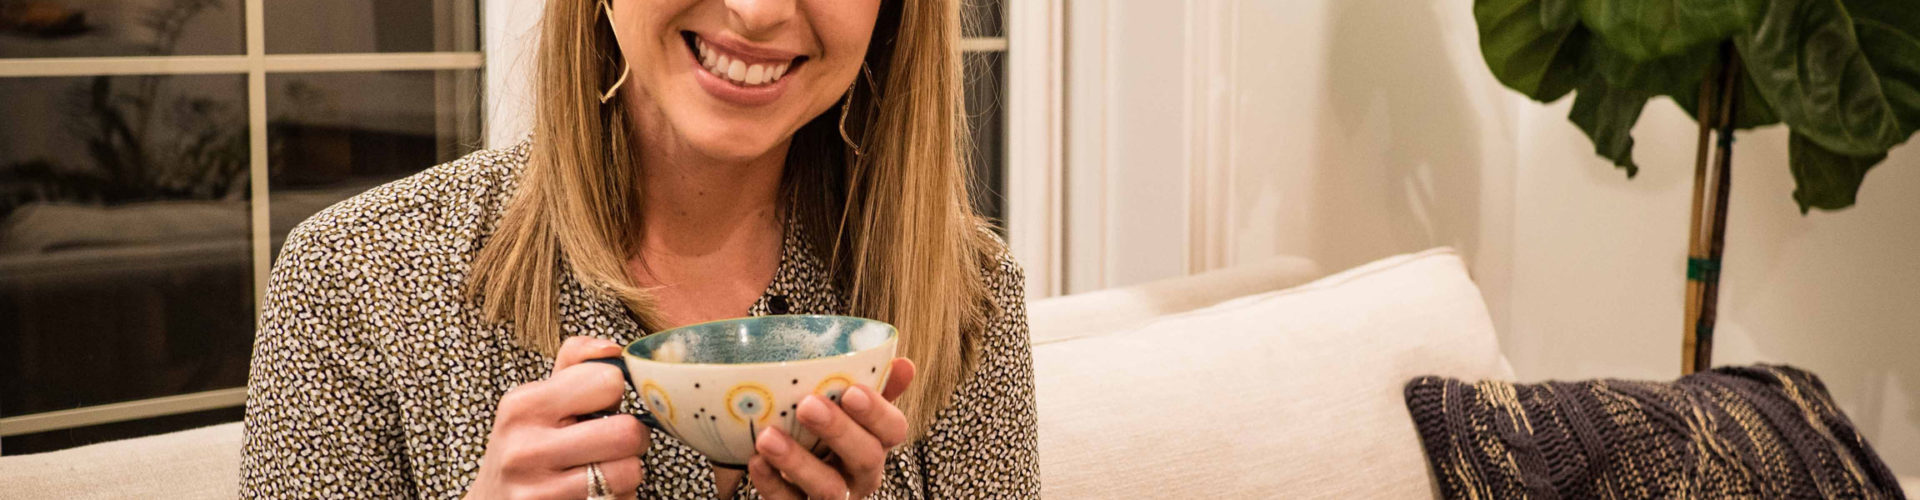 How to Make Your Morning Cup of Coffee into a Practice in Mindfulness